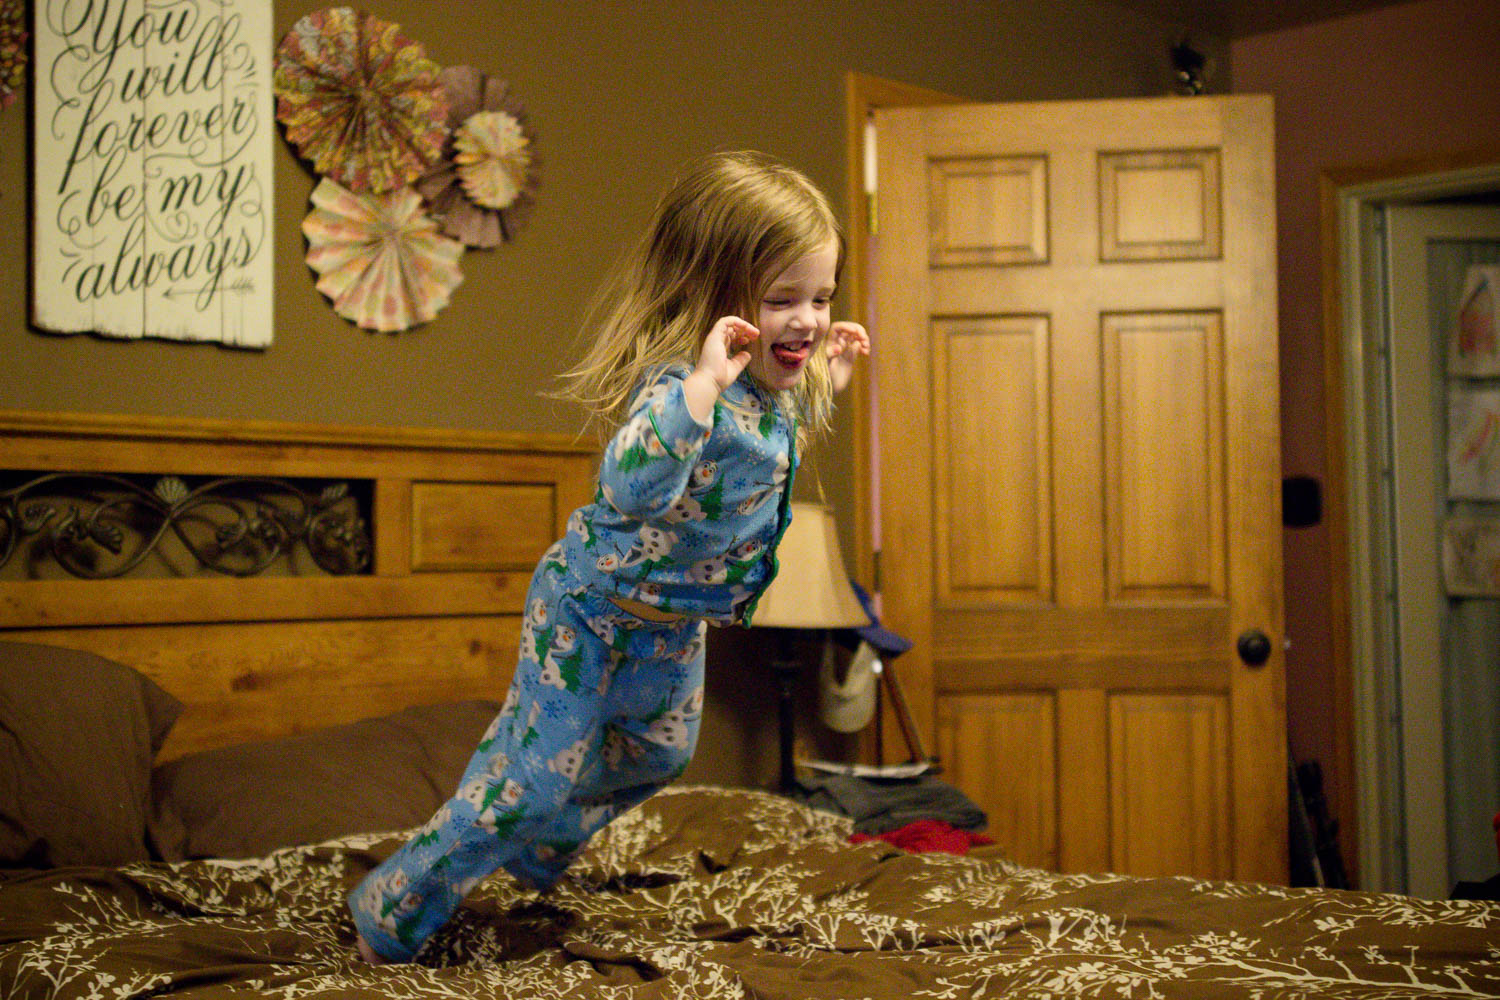 No more monkeys jumping on the bed -crown point indiana storytelling photography